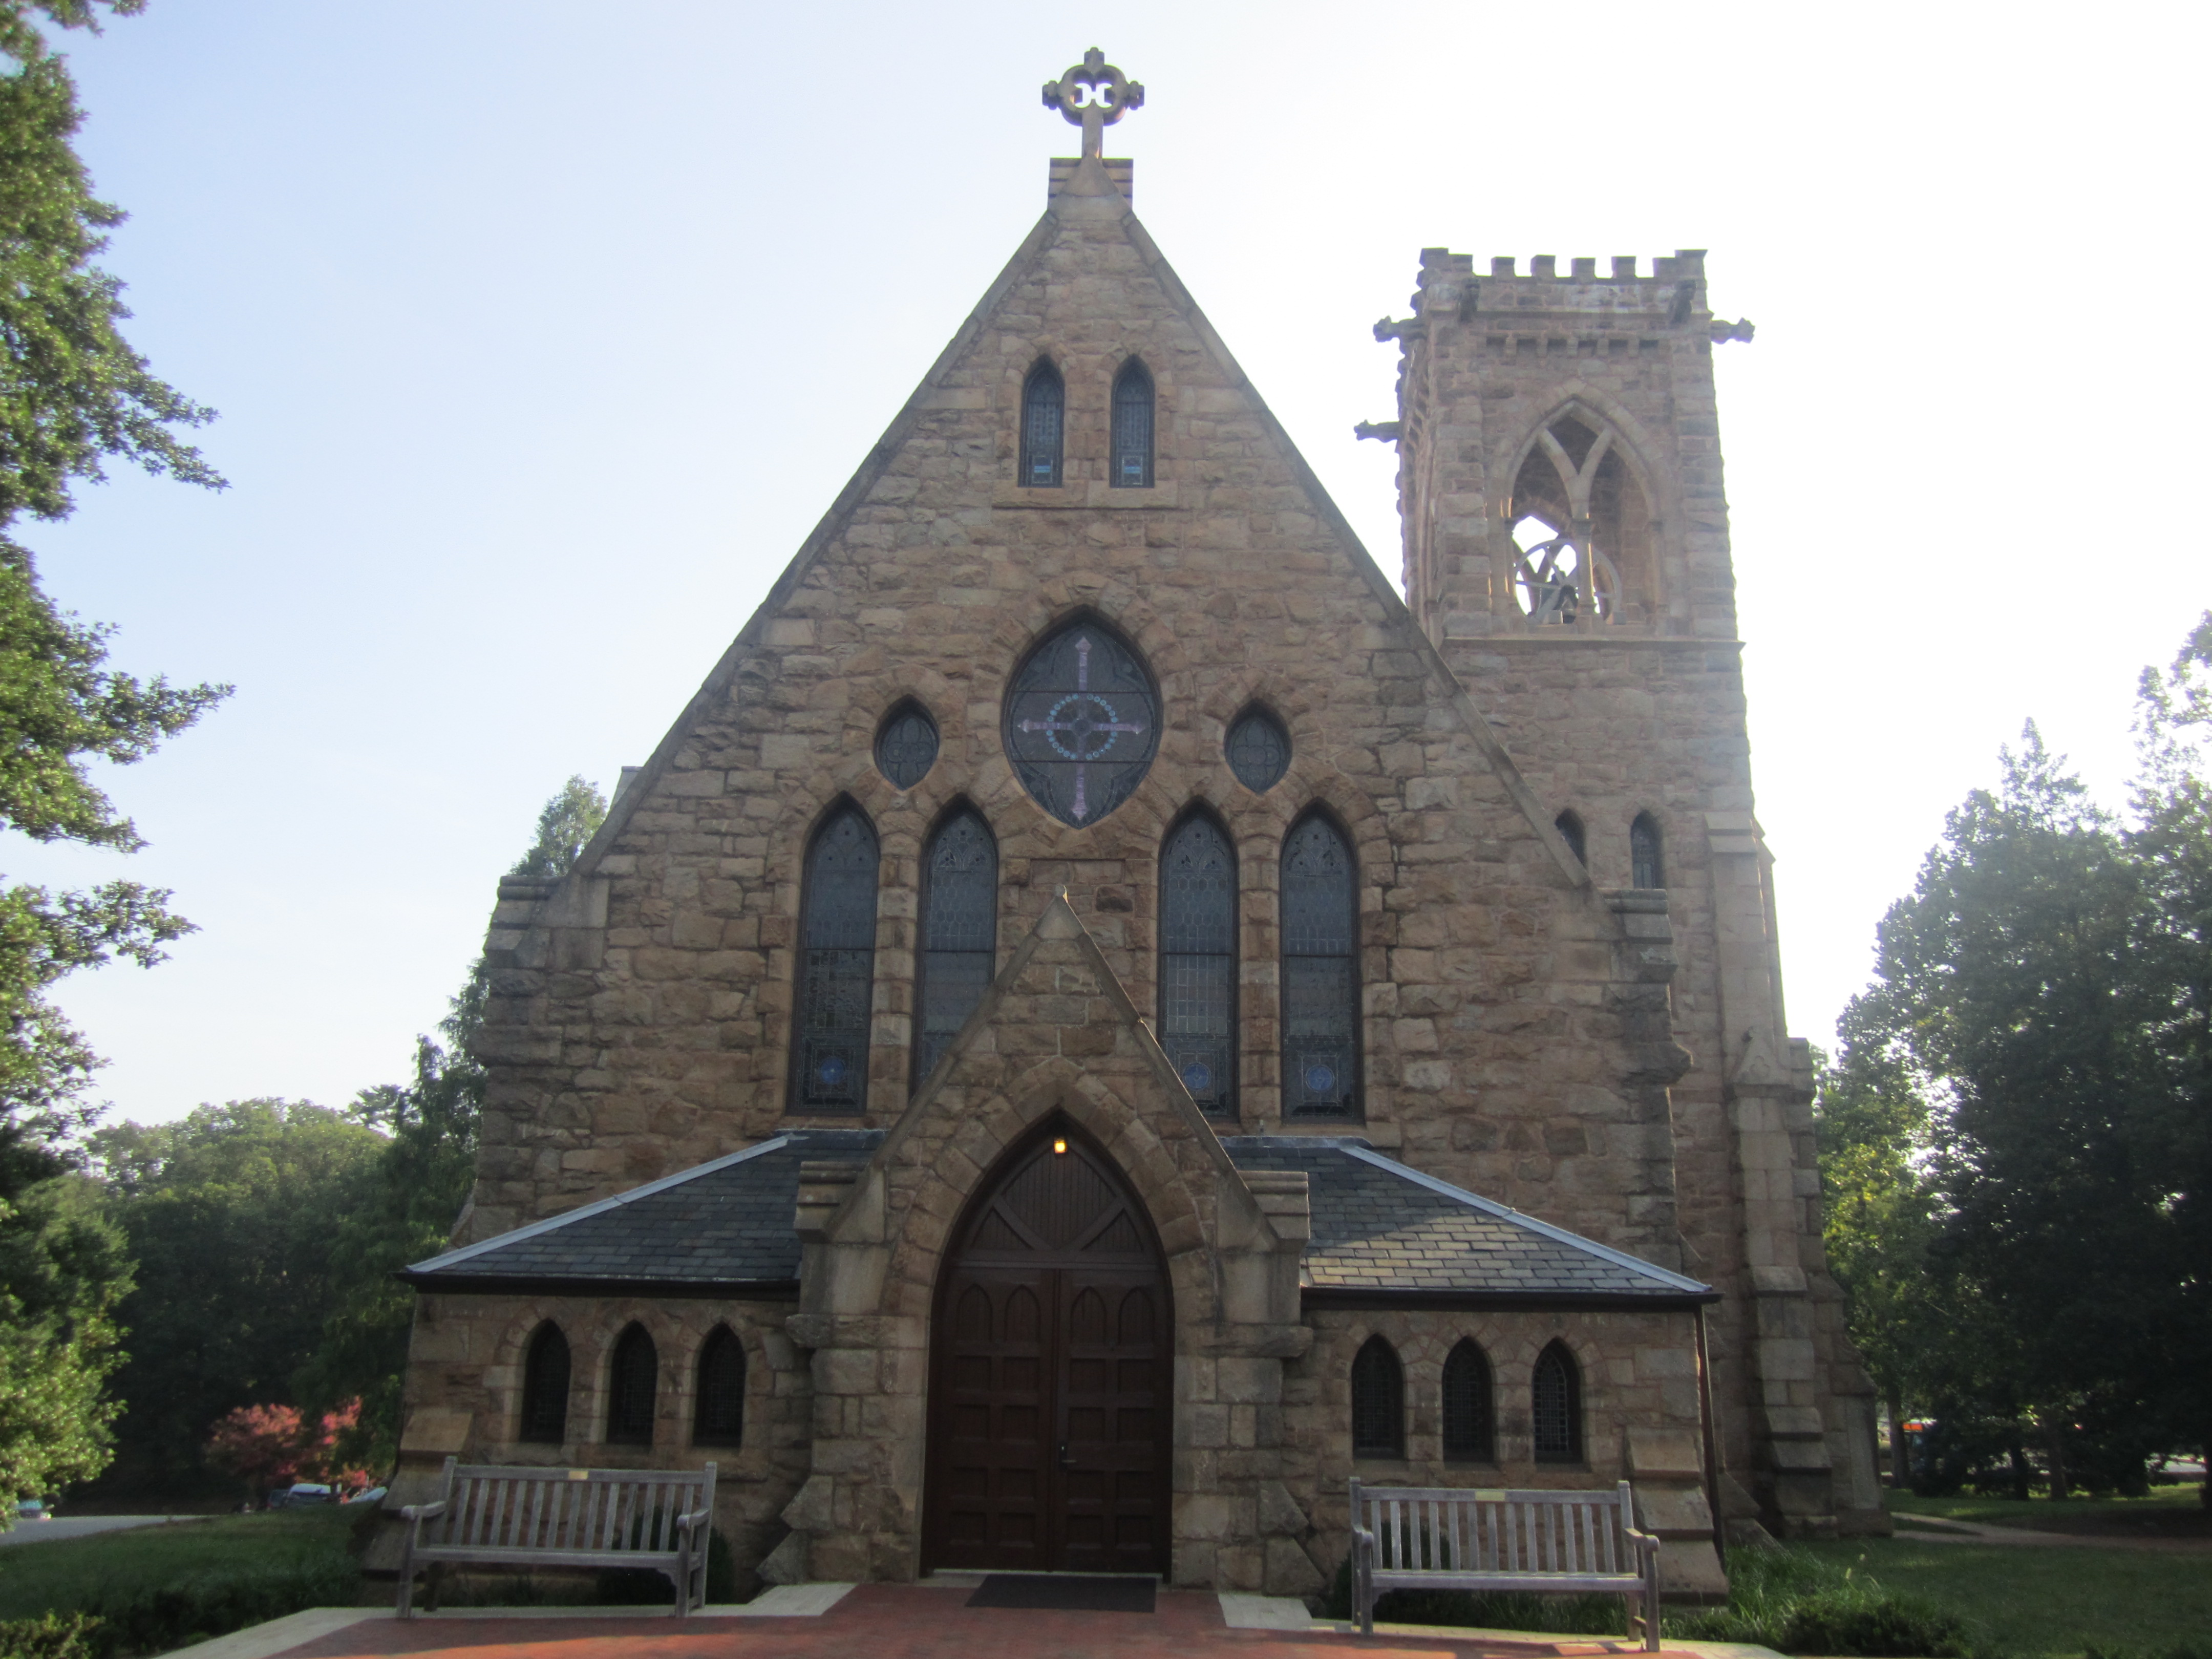 The non-denominational chapel near the Rotunda of the university was established in 1890, beyond the original scope of Jefferson's plans.